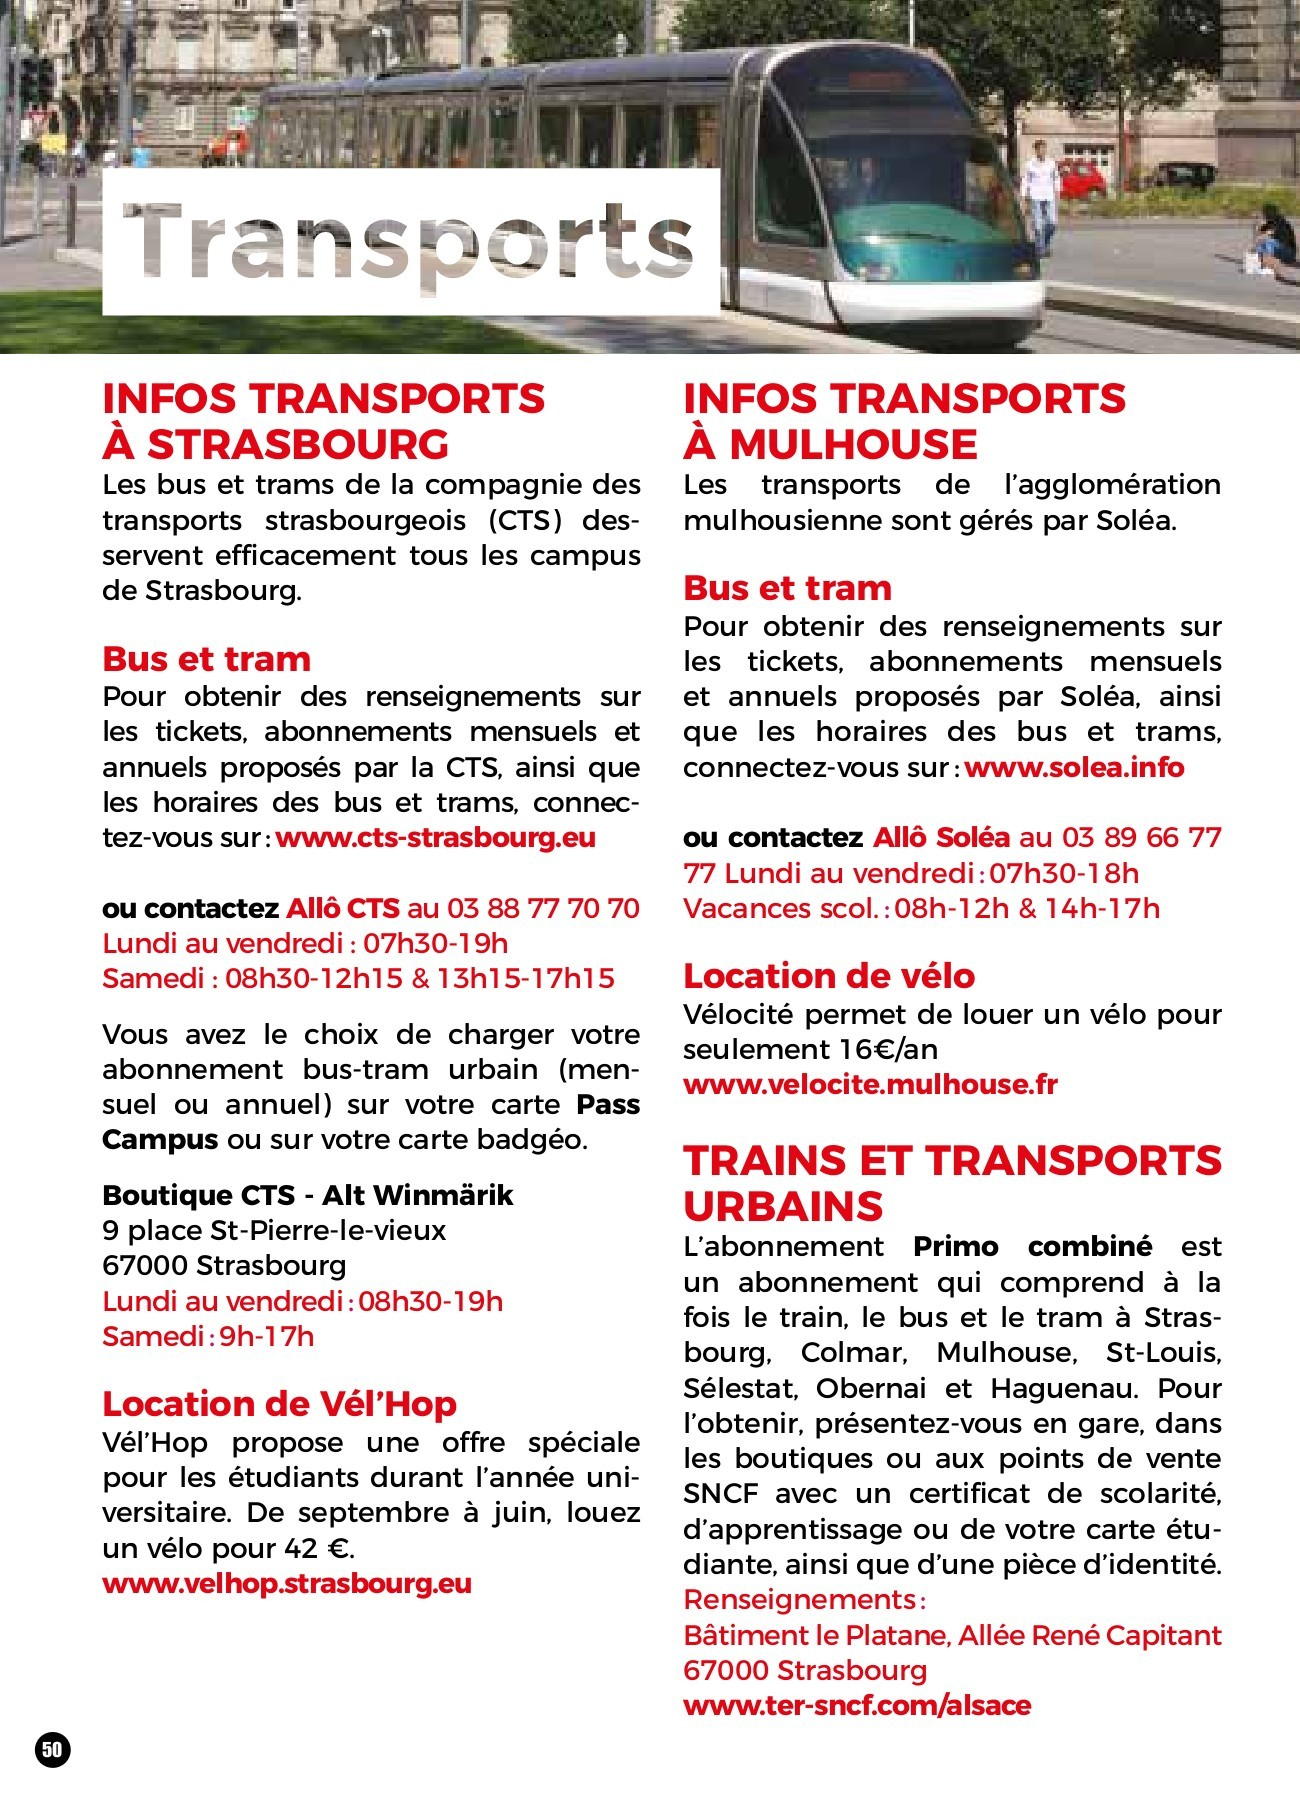 Agence Cts Strasbourg Crous Strasbourg 2018 Pages 51 52 Text Version Fliphtml5